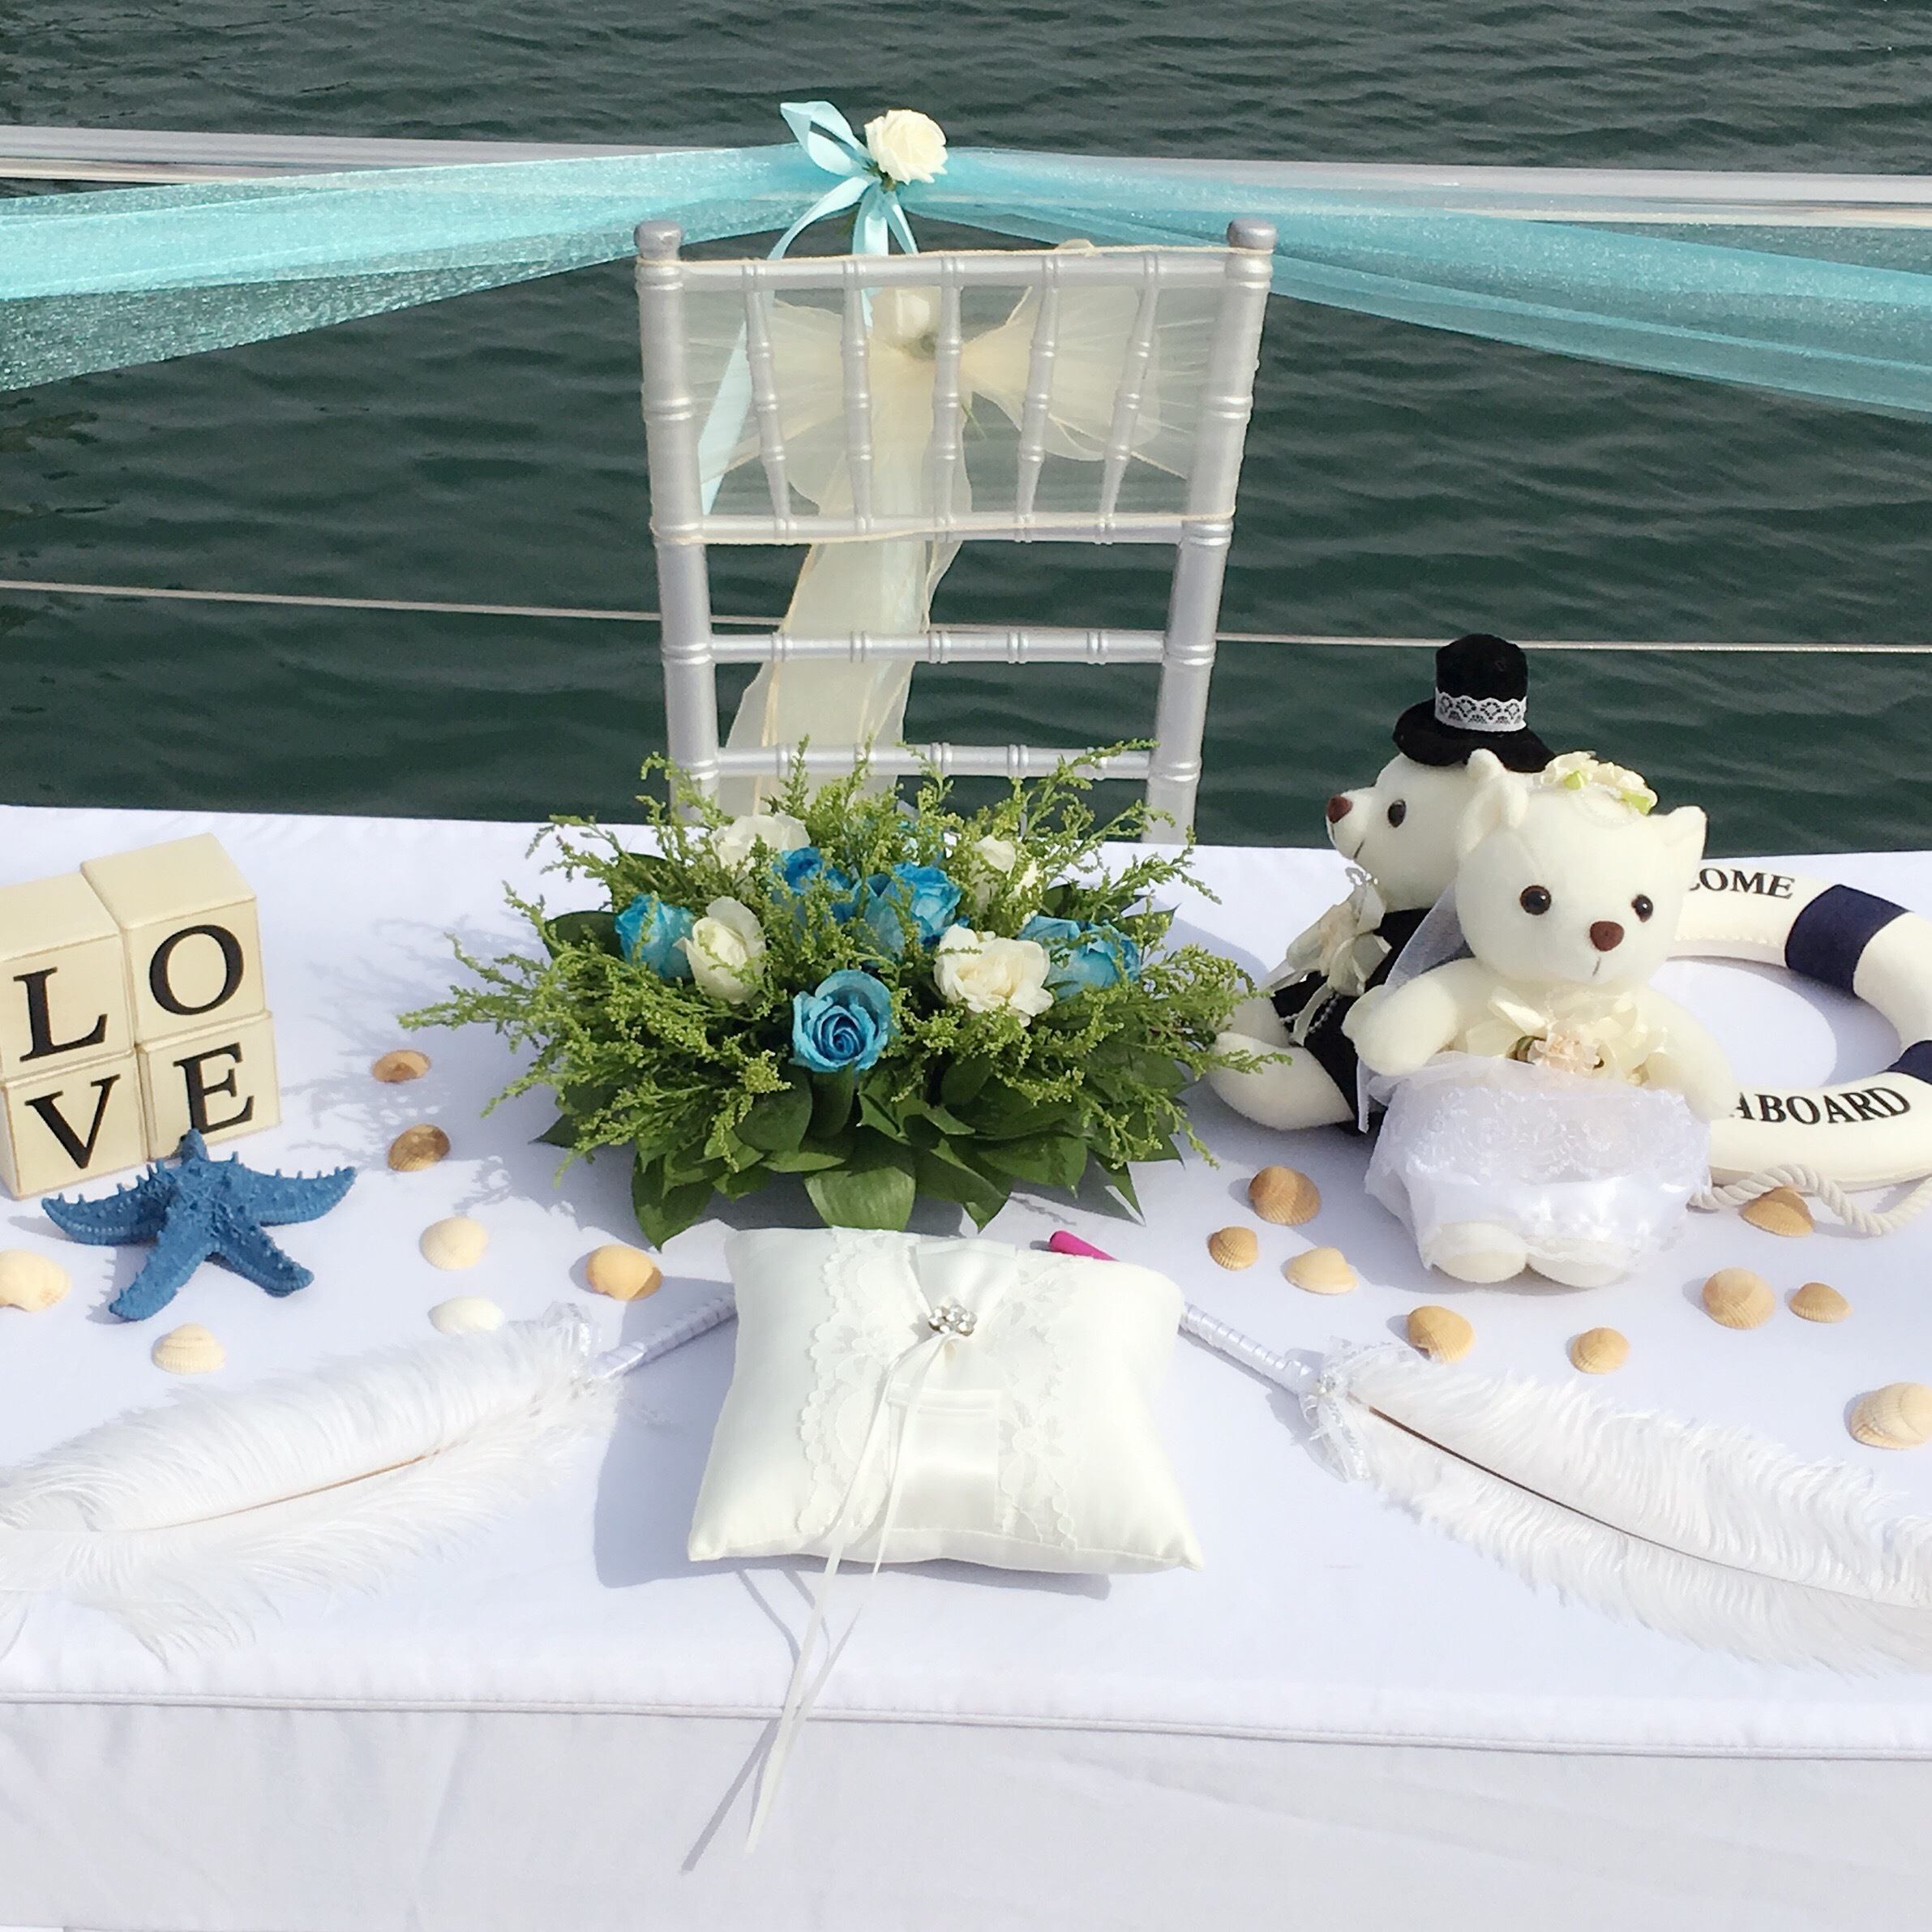 ideas for on decorations homemade and cool decorating planner wedding diy budget decoration decor a i cheap bece with